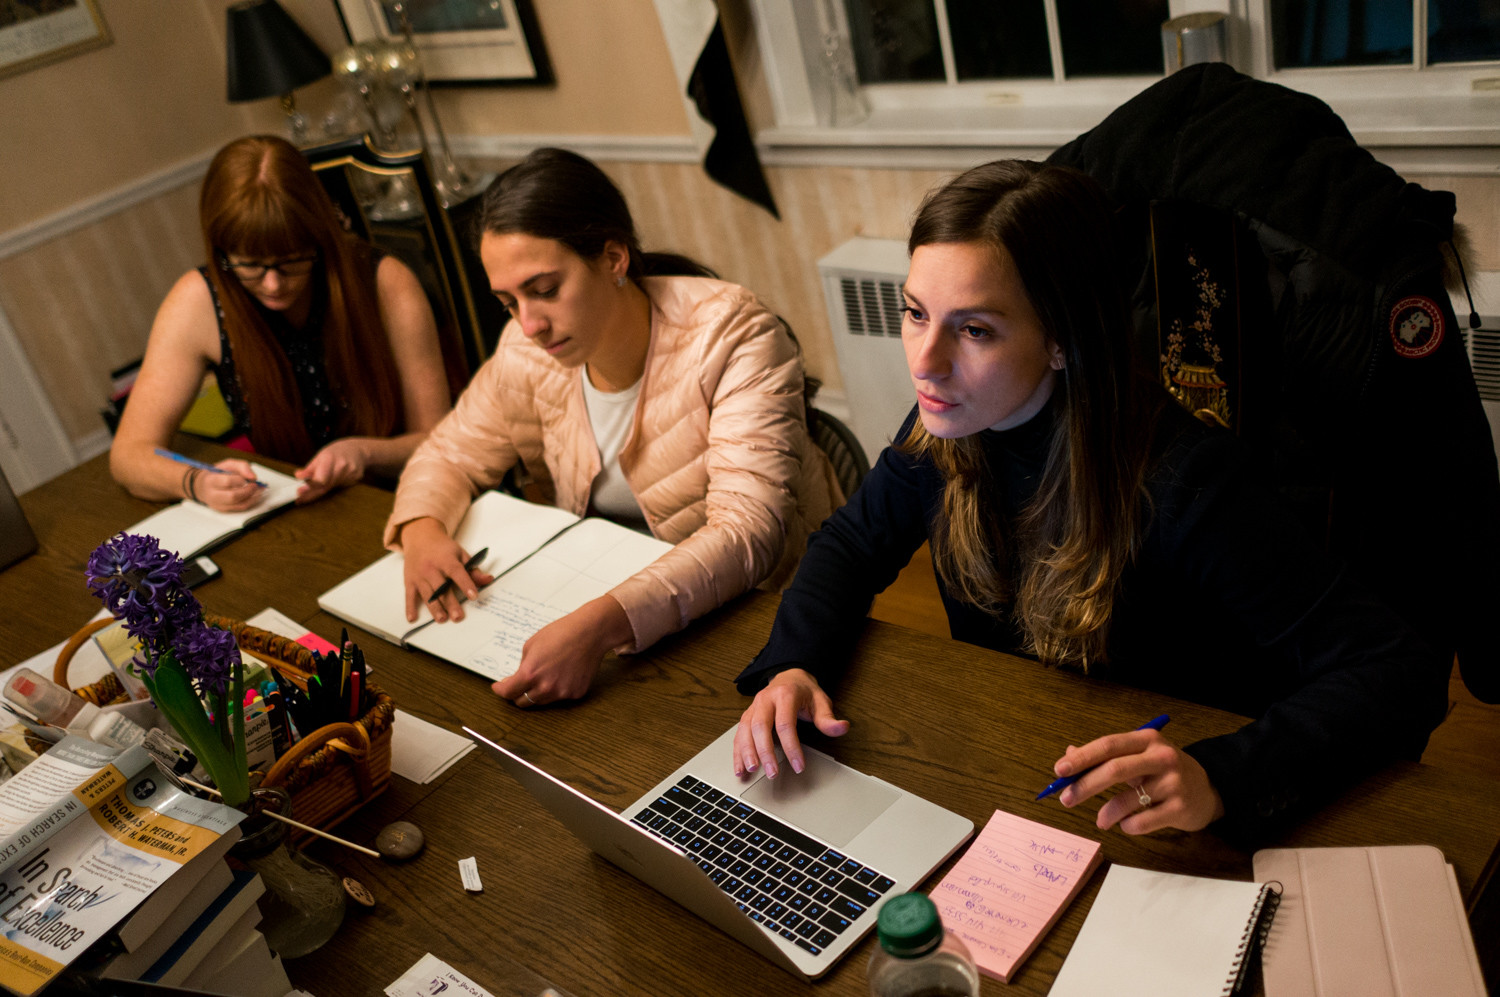 Alessandra Biaggi speaks with her campaign team during a meeting in her dining room. Biaggi left her job as an aide to Gov. Andrew Cuomo to launch her efforts to upset Sen. Jeff Klein in the Democratic primary.